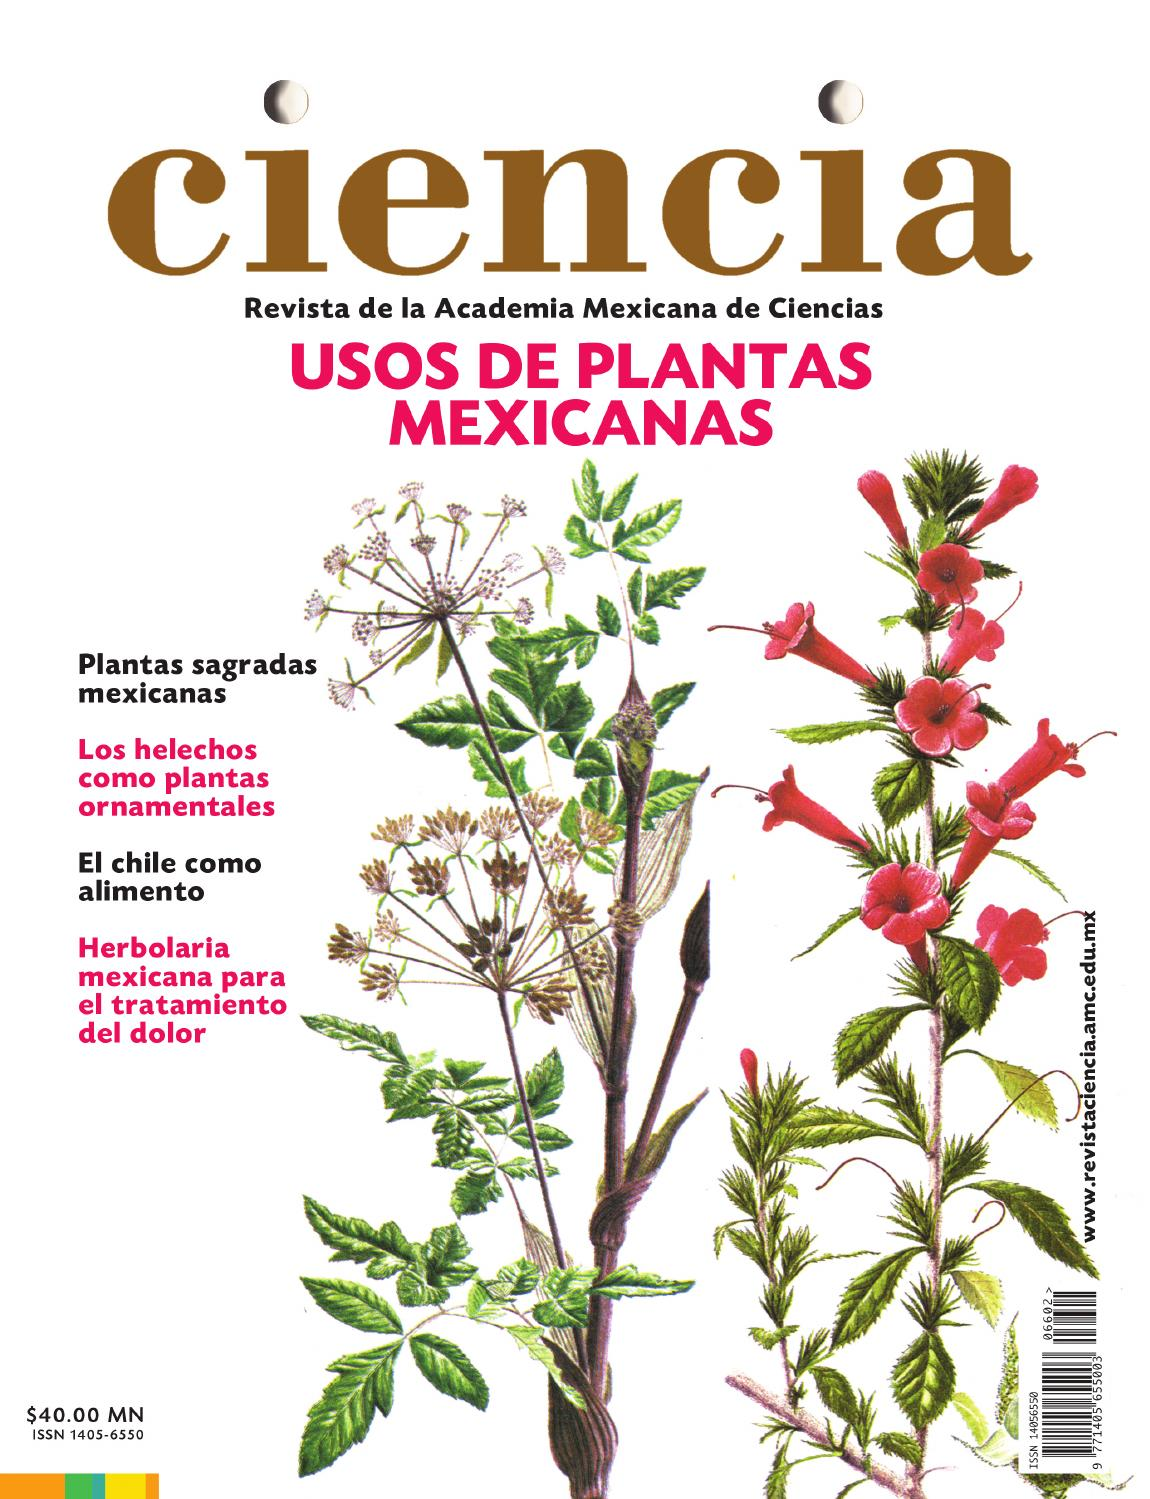 Revista Ciencia vol.66-3 by Academia Mexicana de Ciencias - issuu